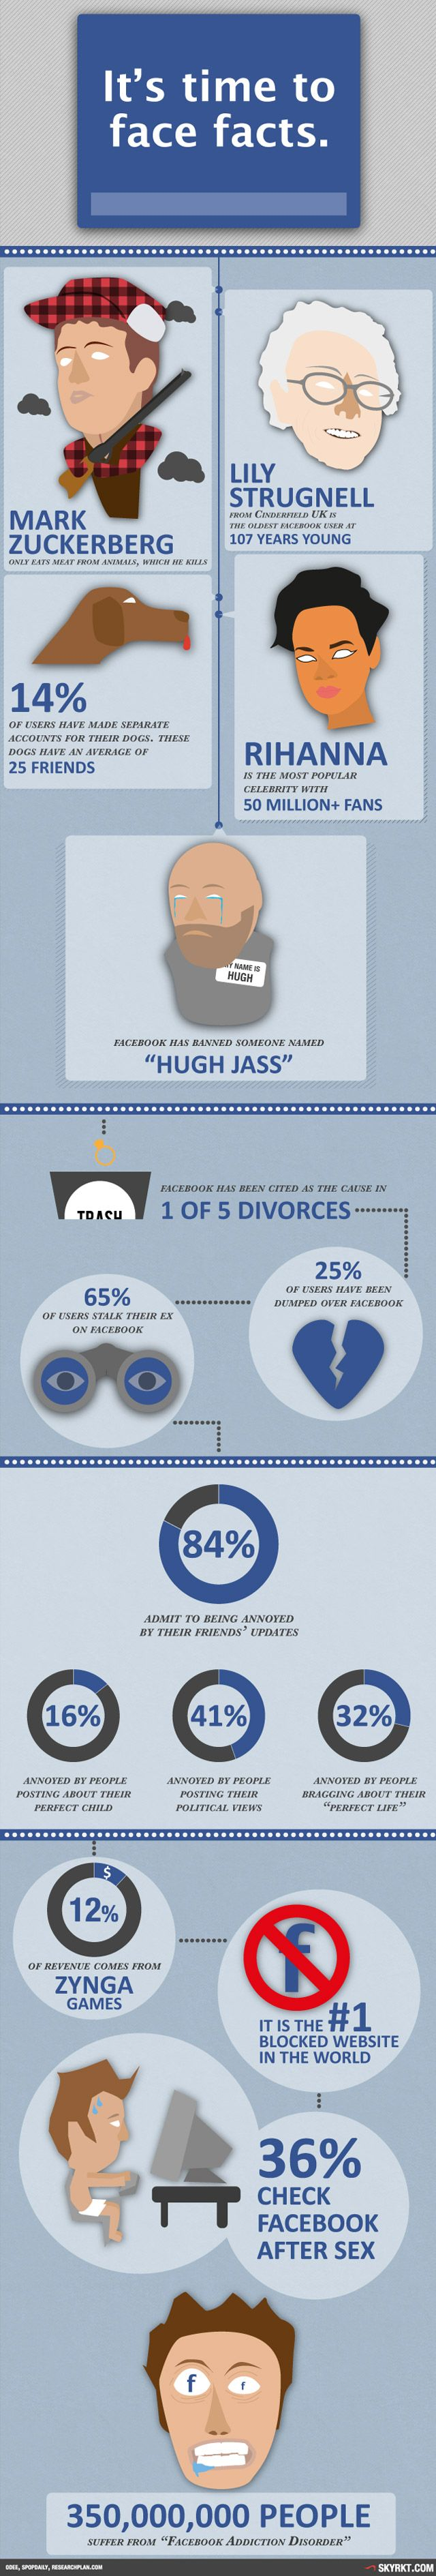 Facebook facts that you may not see everywhere Infographic: Faces Facts, Funny Things, Funny Pictures, Facebook Facts, Funny Stuff, Facts Infographic, Interesting Facts, Interesting Stuff, Fb Facts